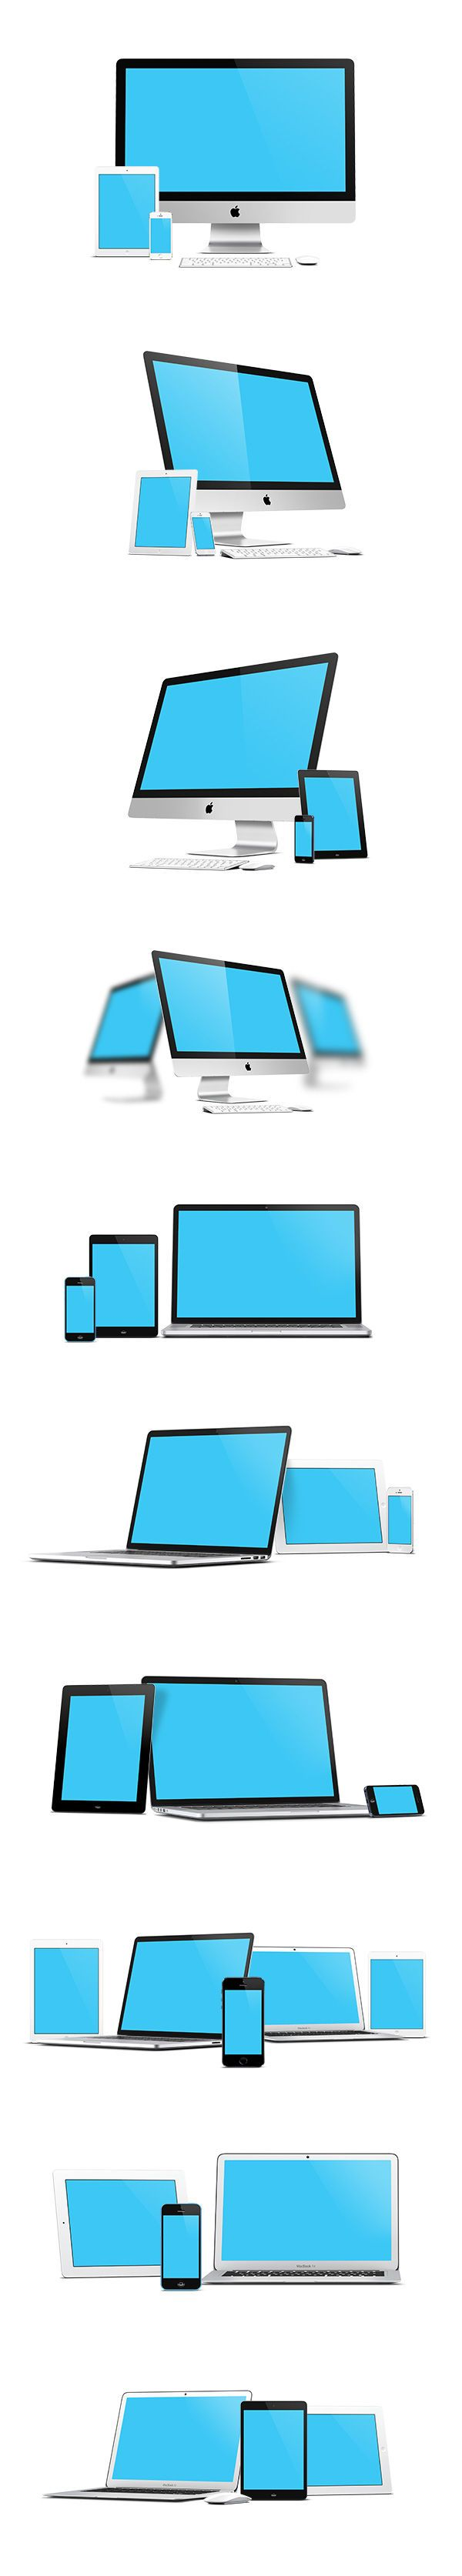 This mock-up is quite special: a perfect, sharp and clean rendering of all new apple devices, with pure reflections...